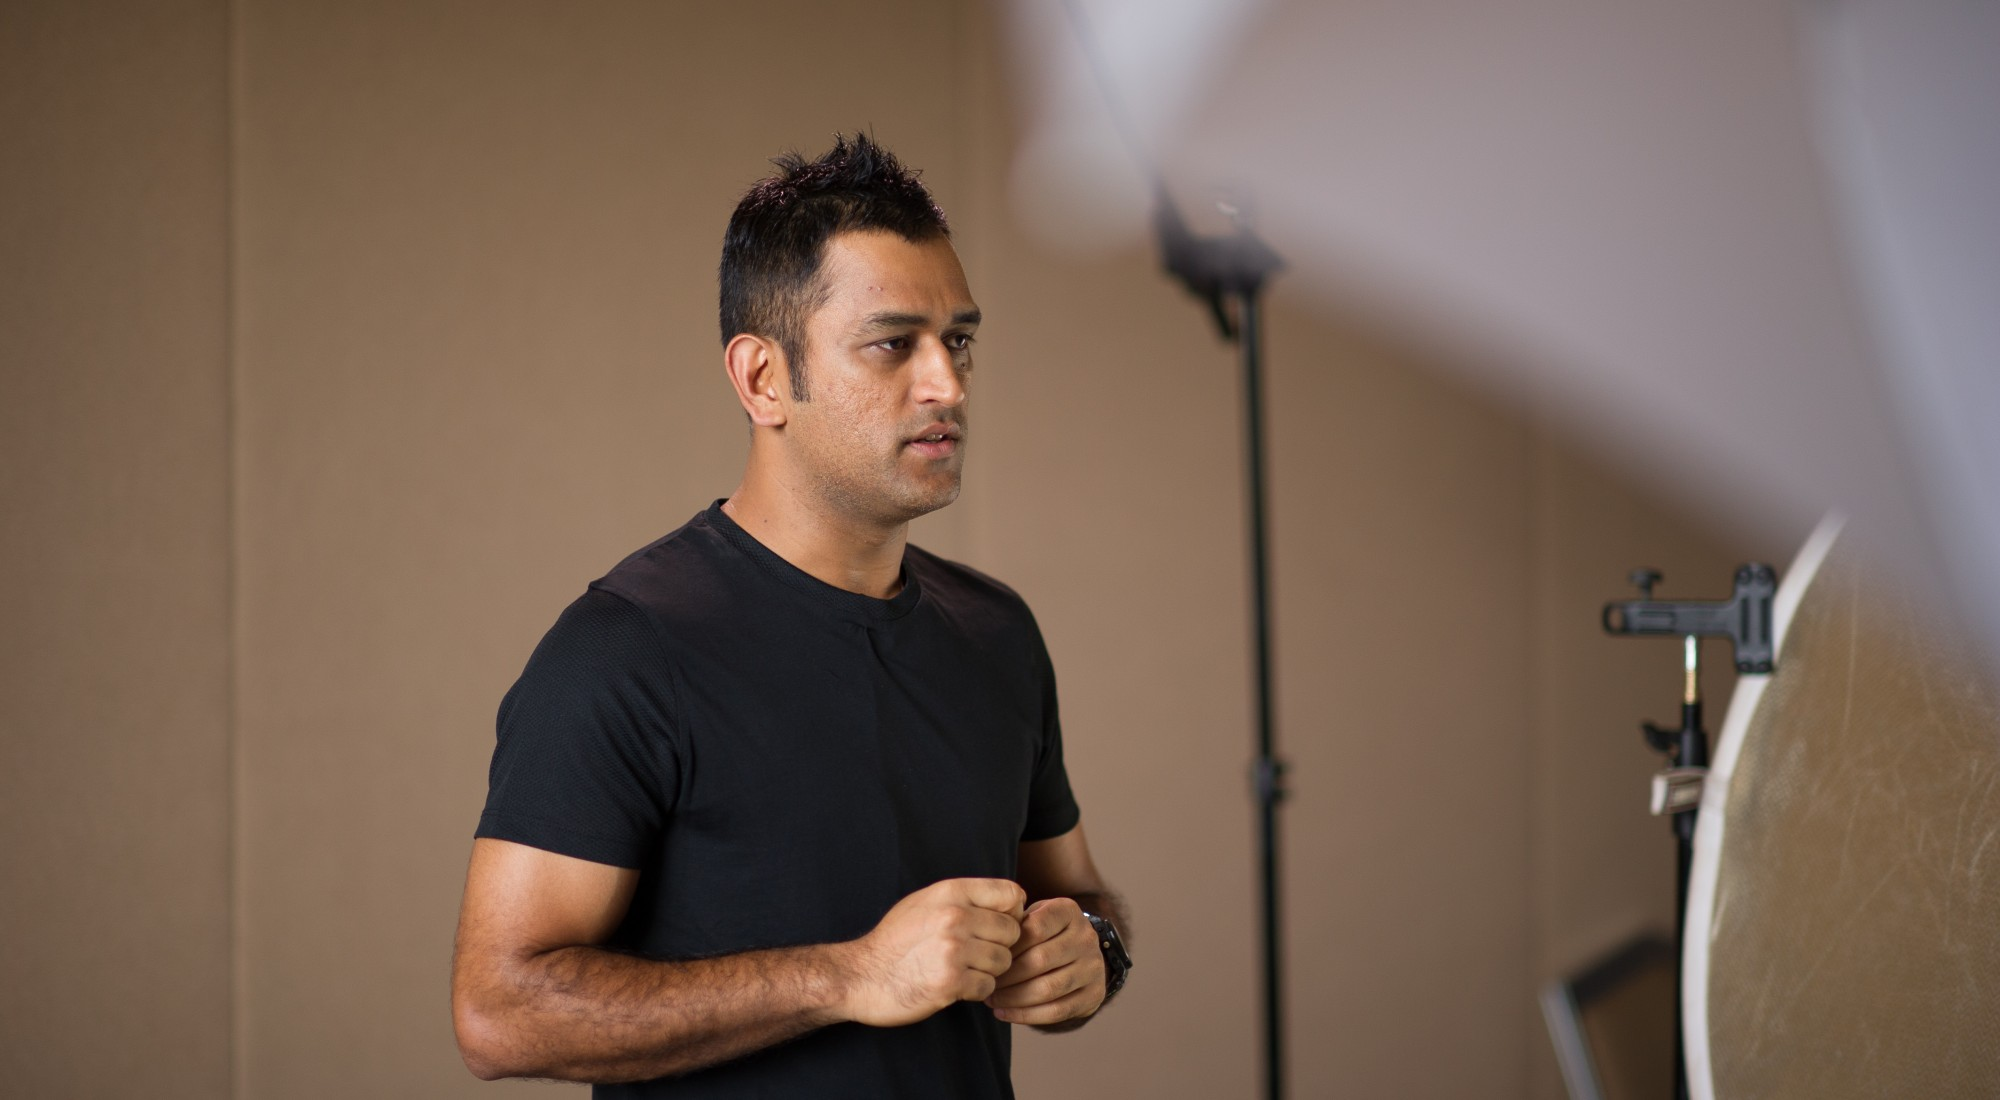 Respect2Protect MS Dhoni Behind the scenes